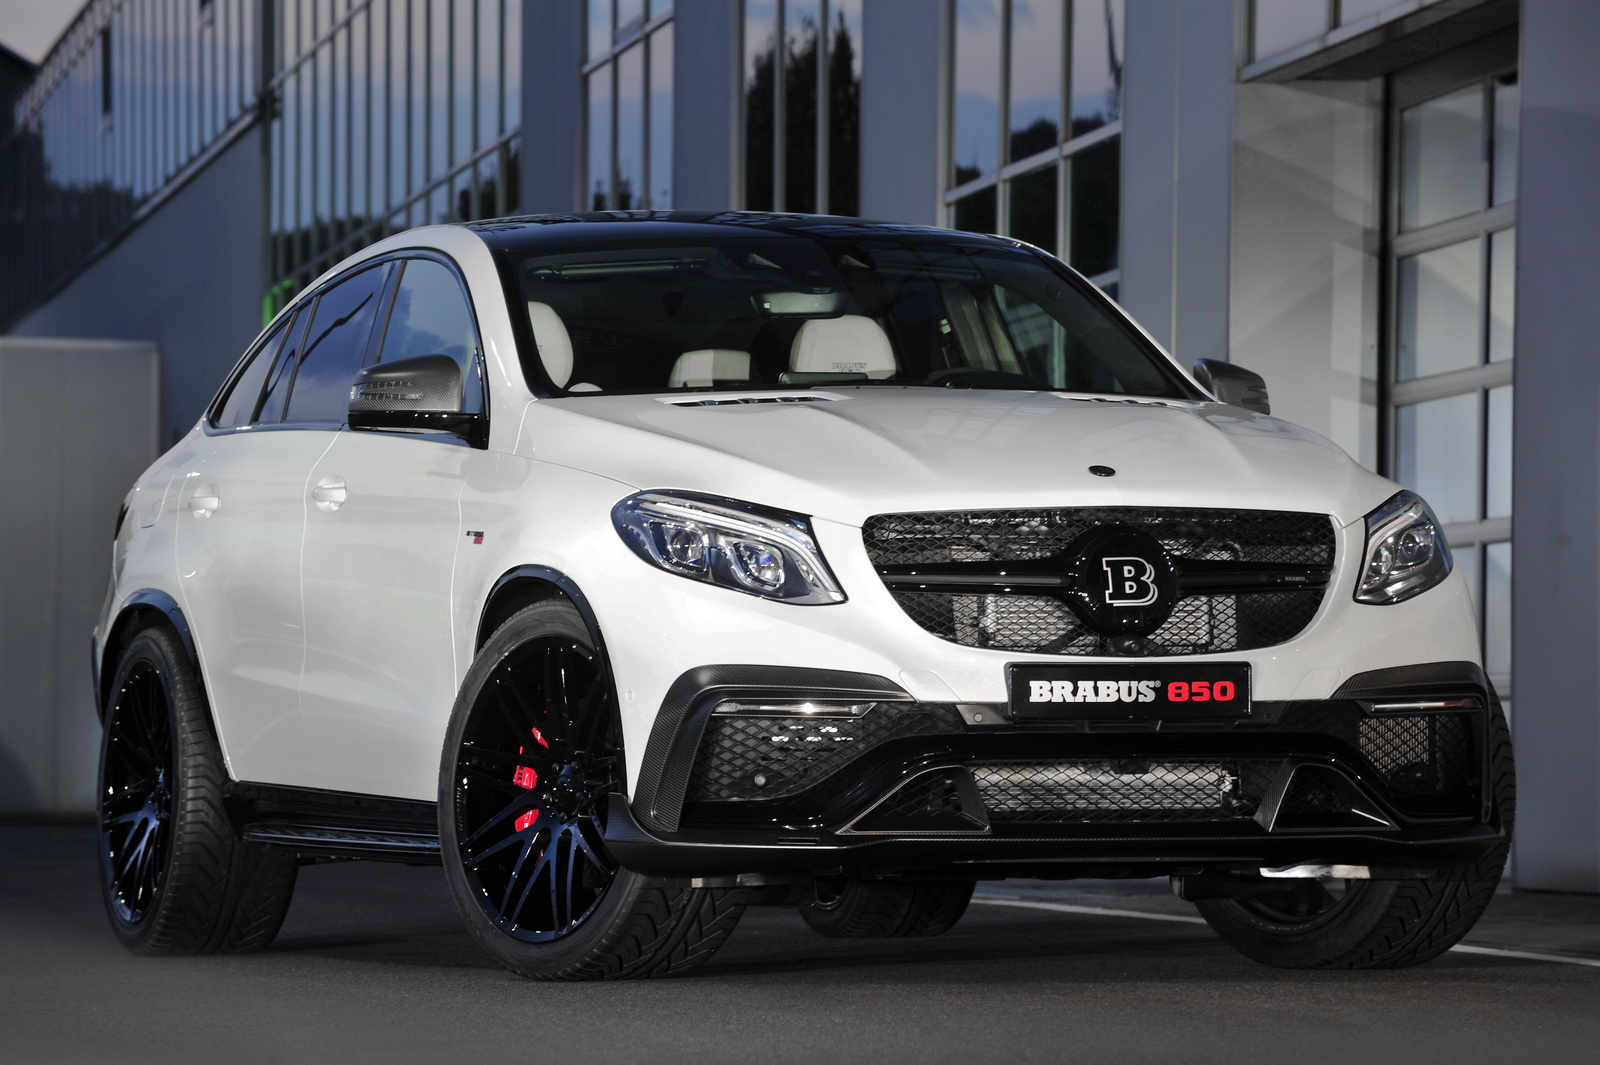 https://s1.cdn.autoevolution.com/images/news/brabus-unveils-850-hp-gle-63-amg-coupe-with-stormtrooper-look-photo-gallery-99966_1.jpg